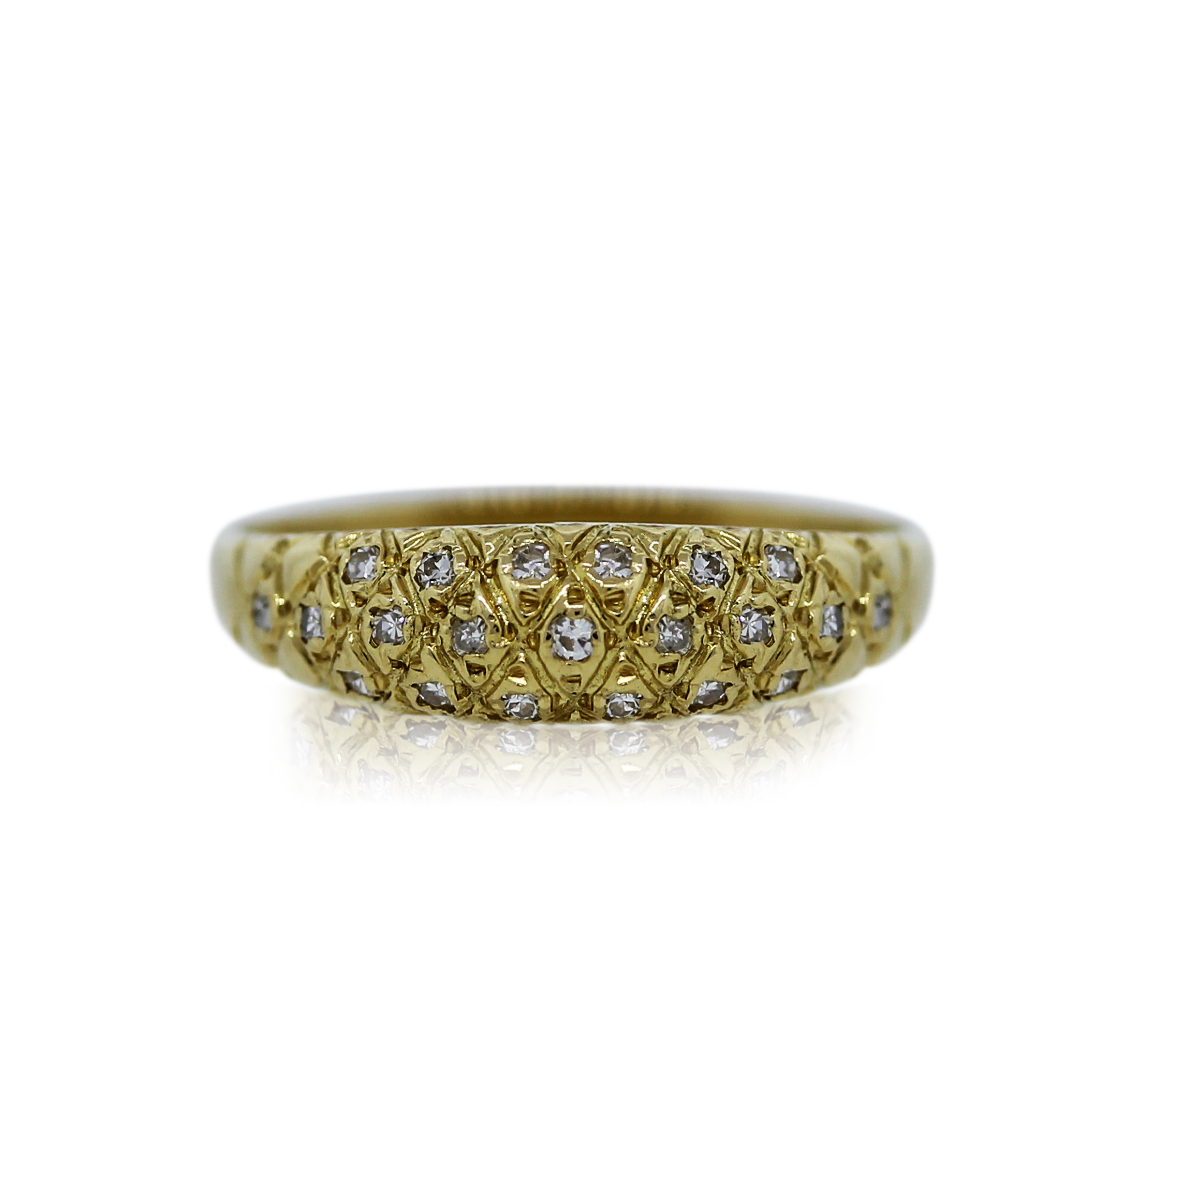 You are Viewing this Stunning Diamond Dome Ring!